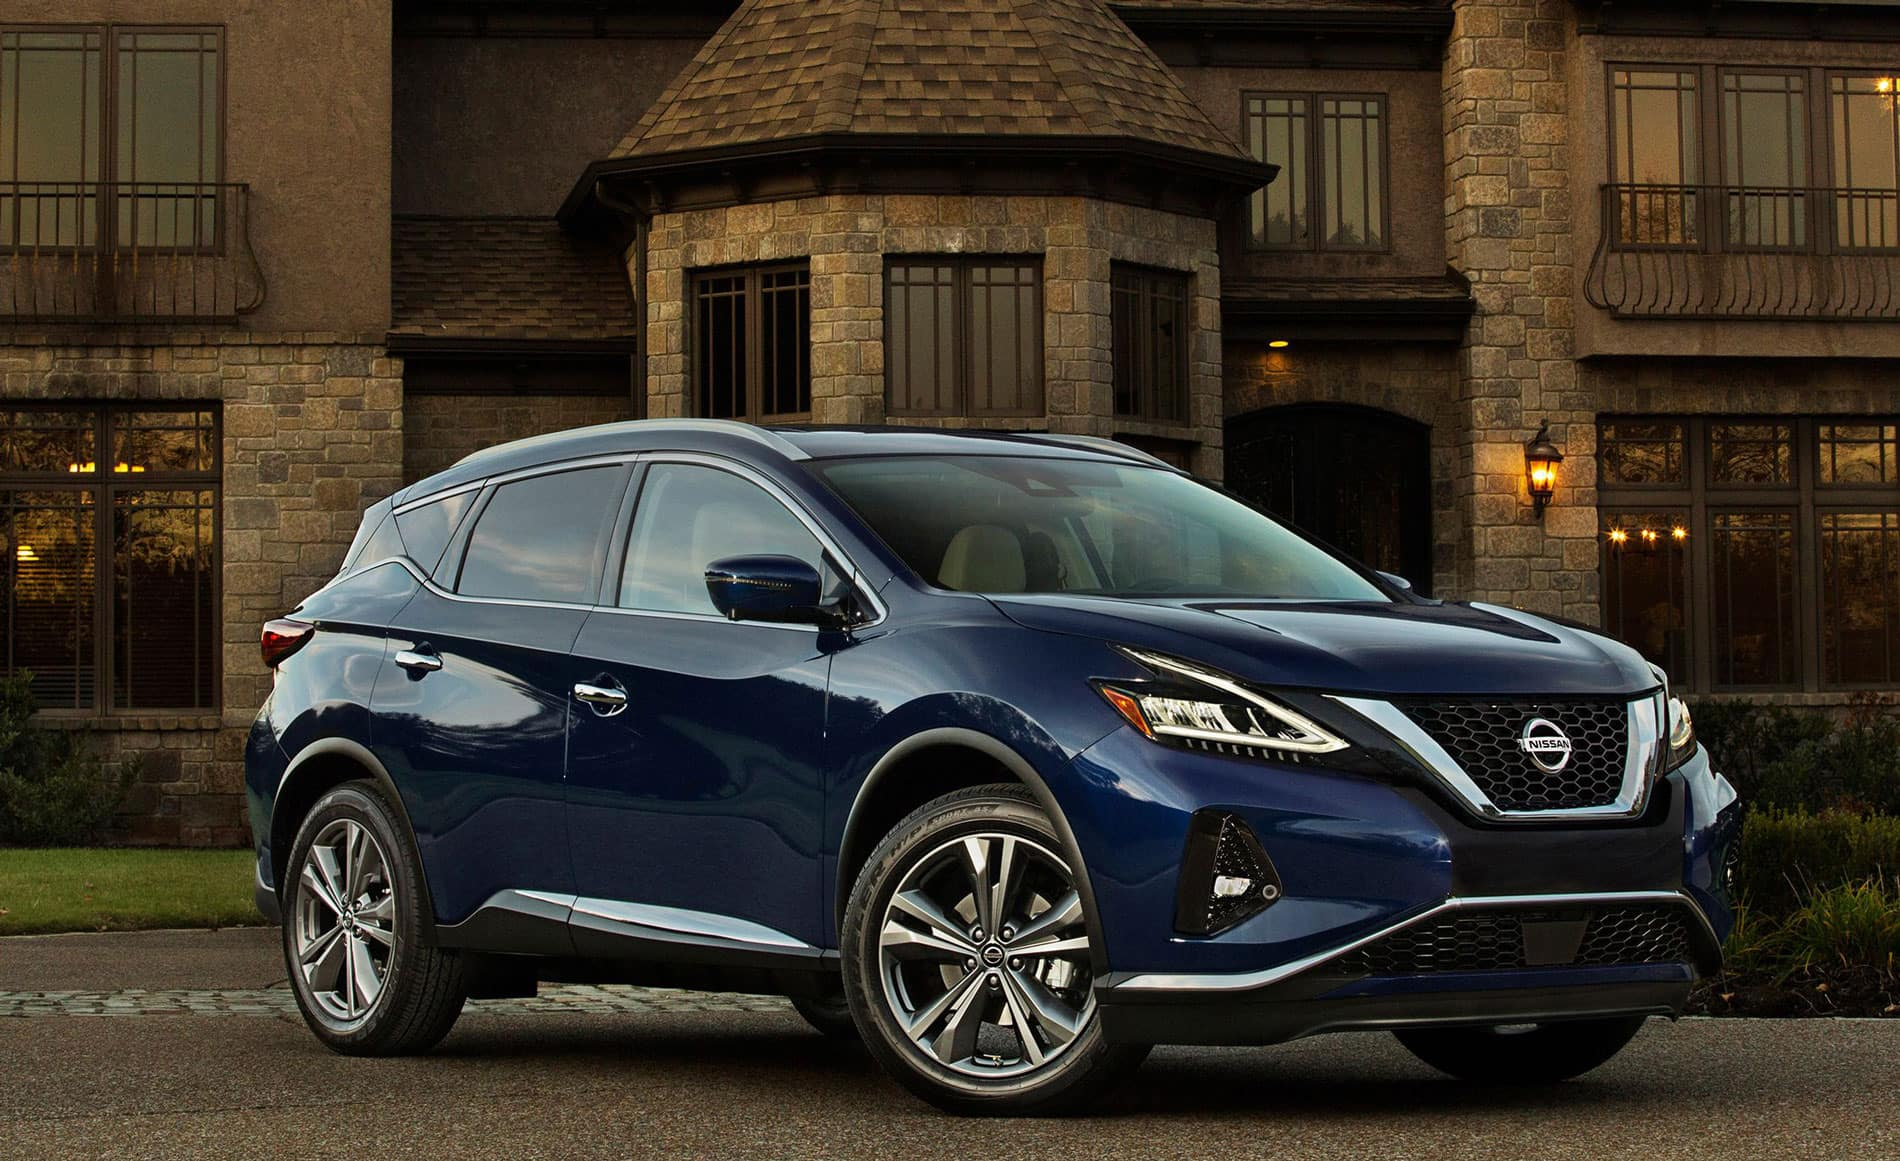 2019 nissan murano gets a facelift and new safety gear Nissan Murano 2010 2019 nissan murano gets visual and safety updates